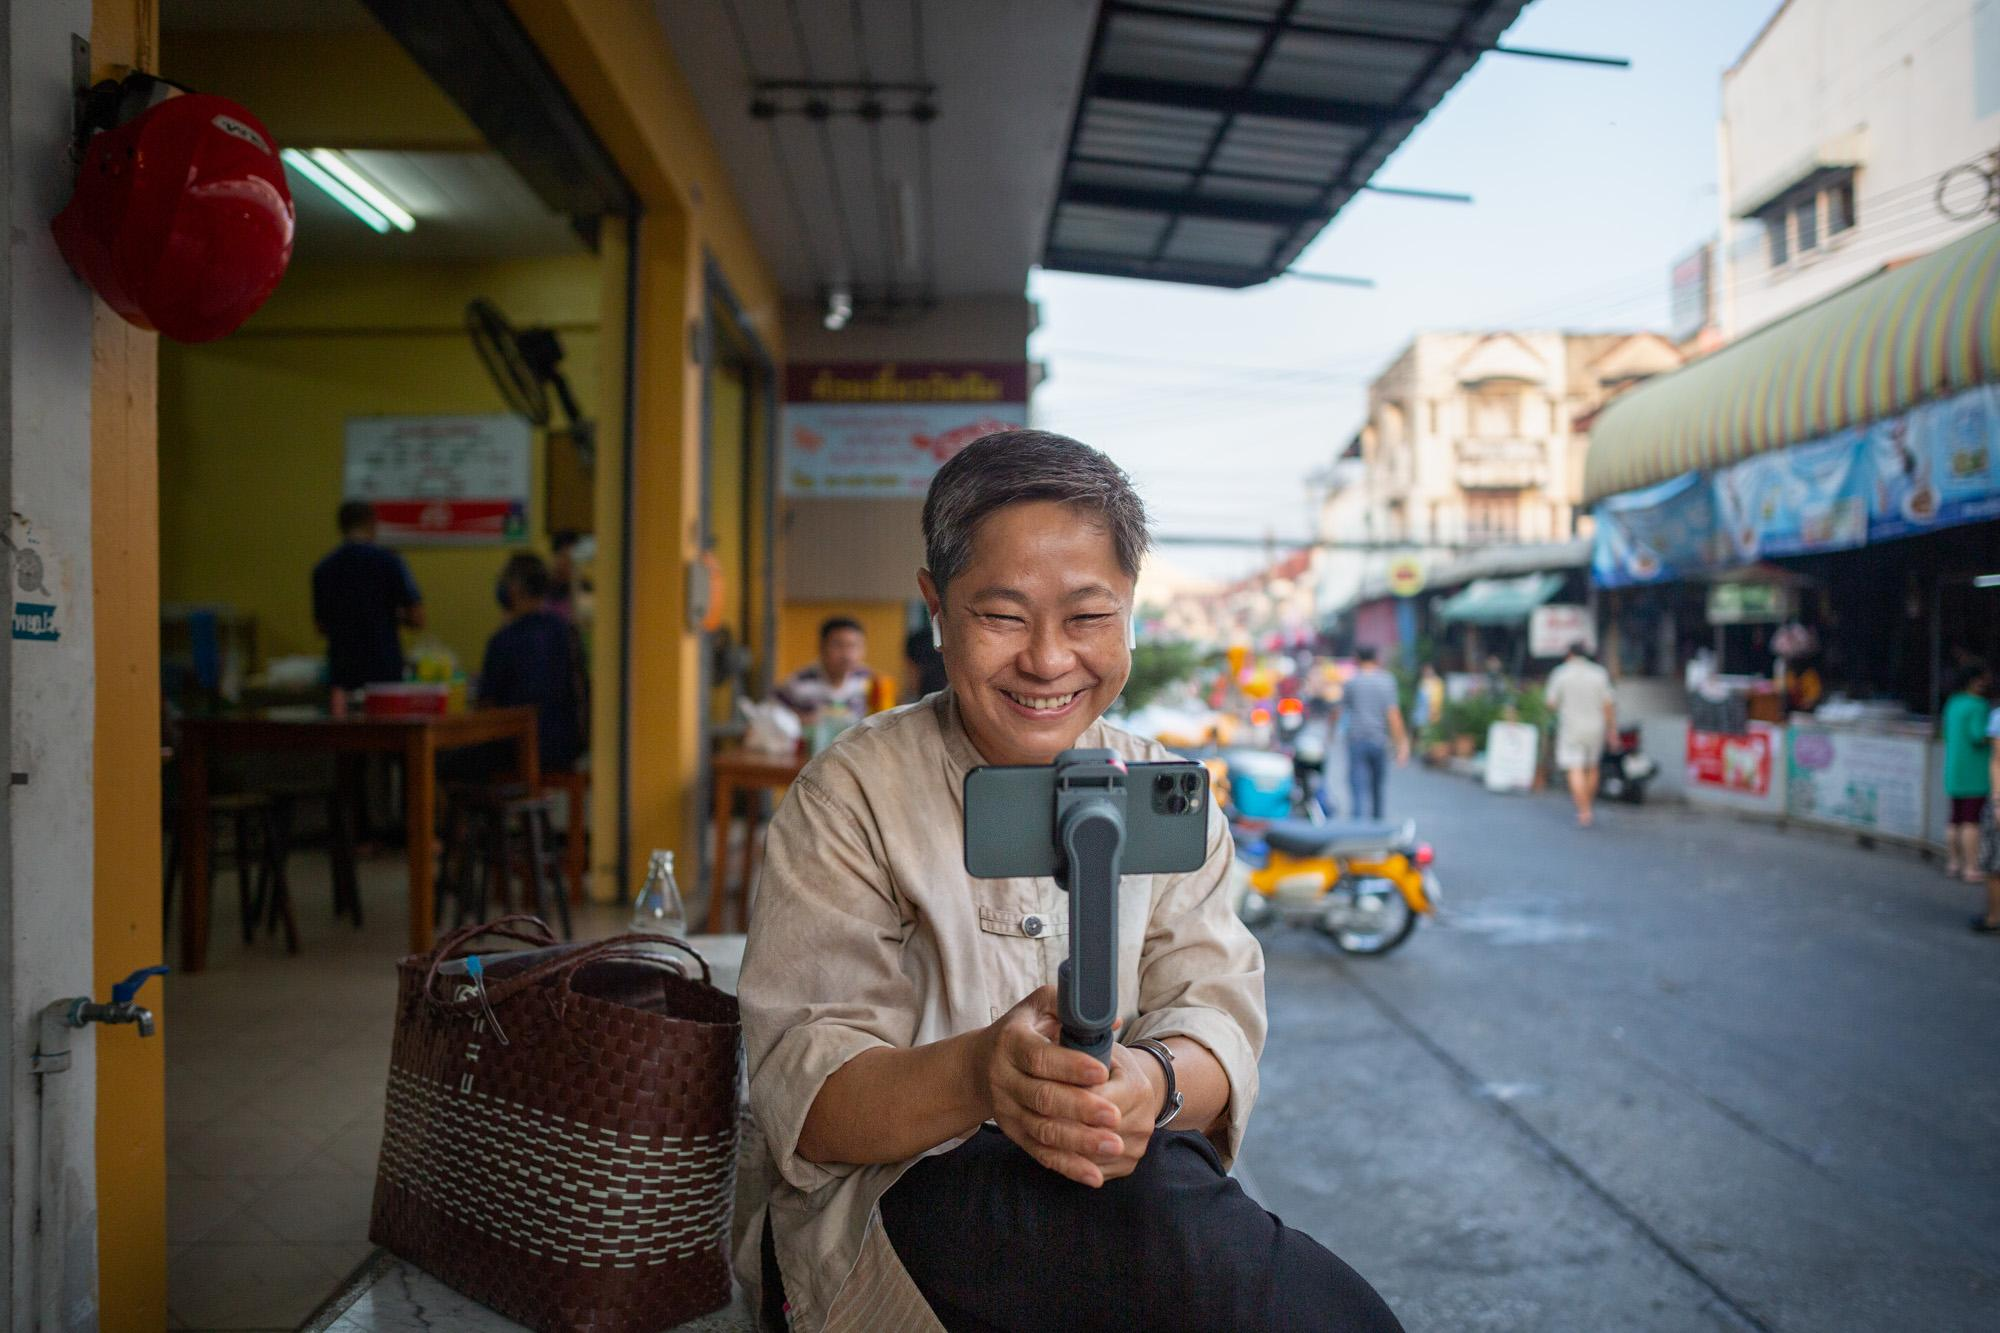 Hnoi Latthitham, 53, leads a virtual tour of Chai Chimplee Temple Market in Bangkok, Thailand, on Monday, February 1, 2021, in Bangkok, Thailand. She shows participants the hustle and bustle of morning life, and stops to explain rituals of alms giving to Buddhist monks.